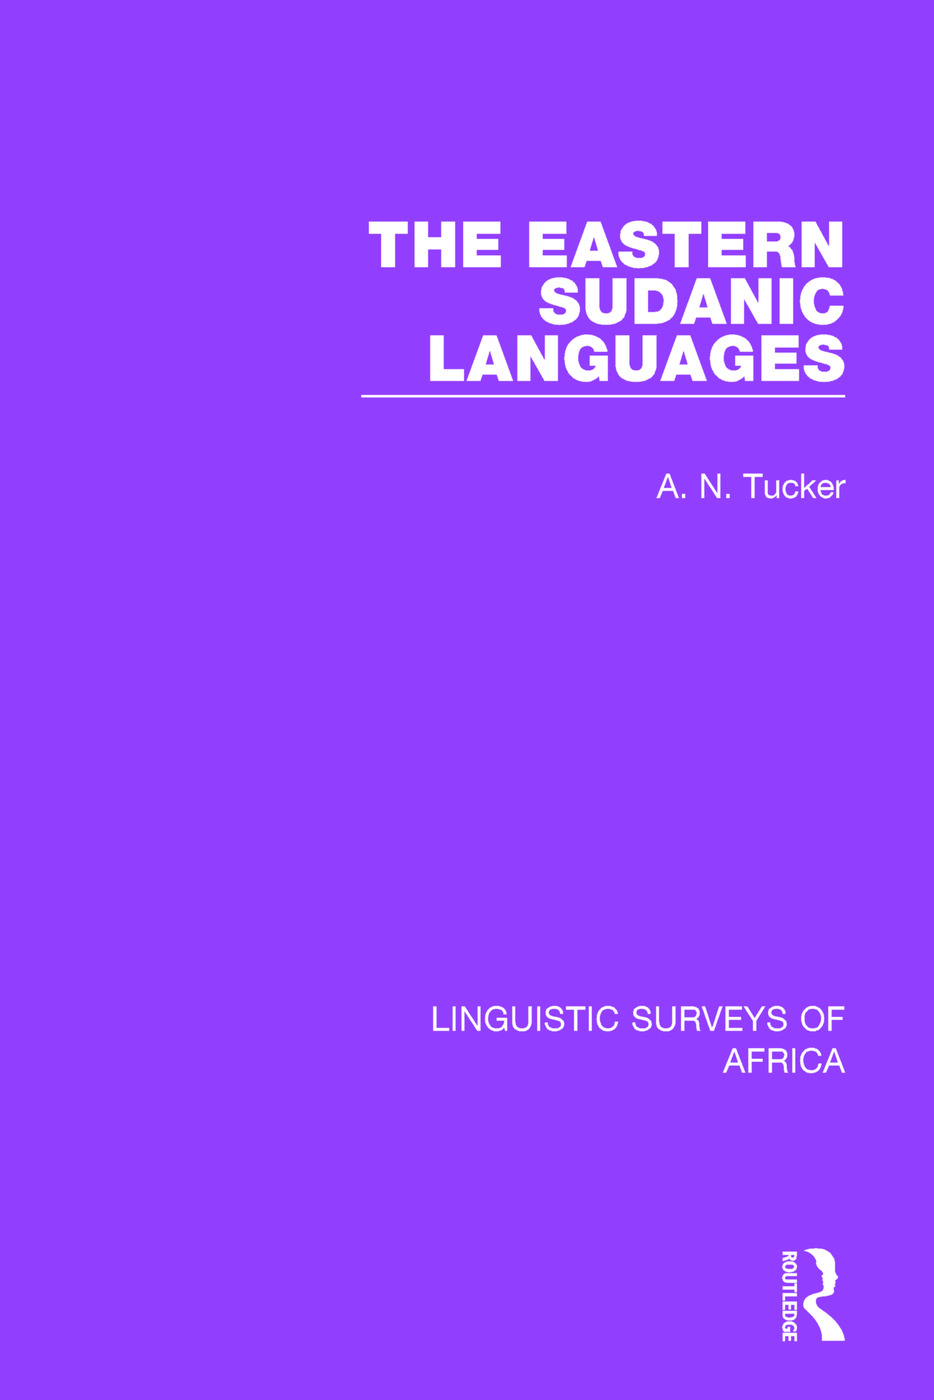 The Eastern Sudanic Languages